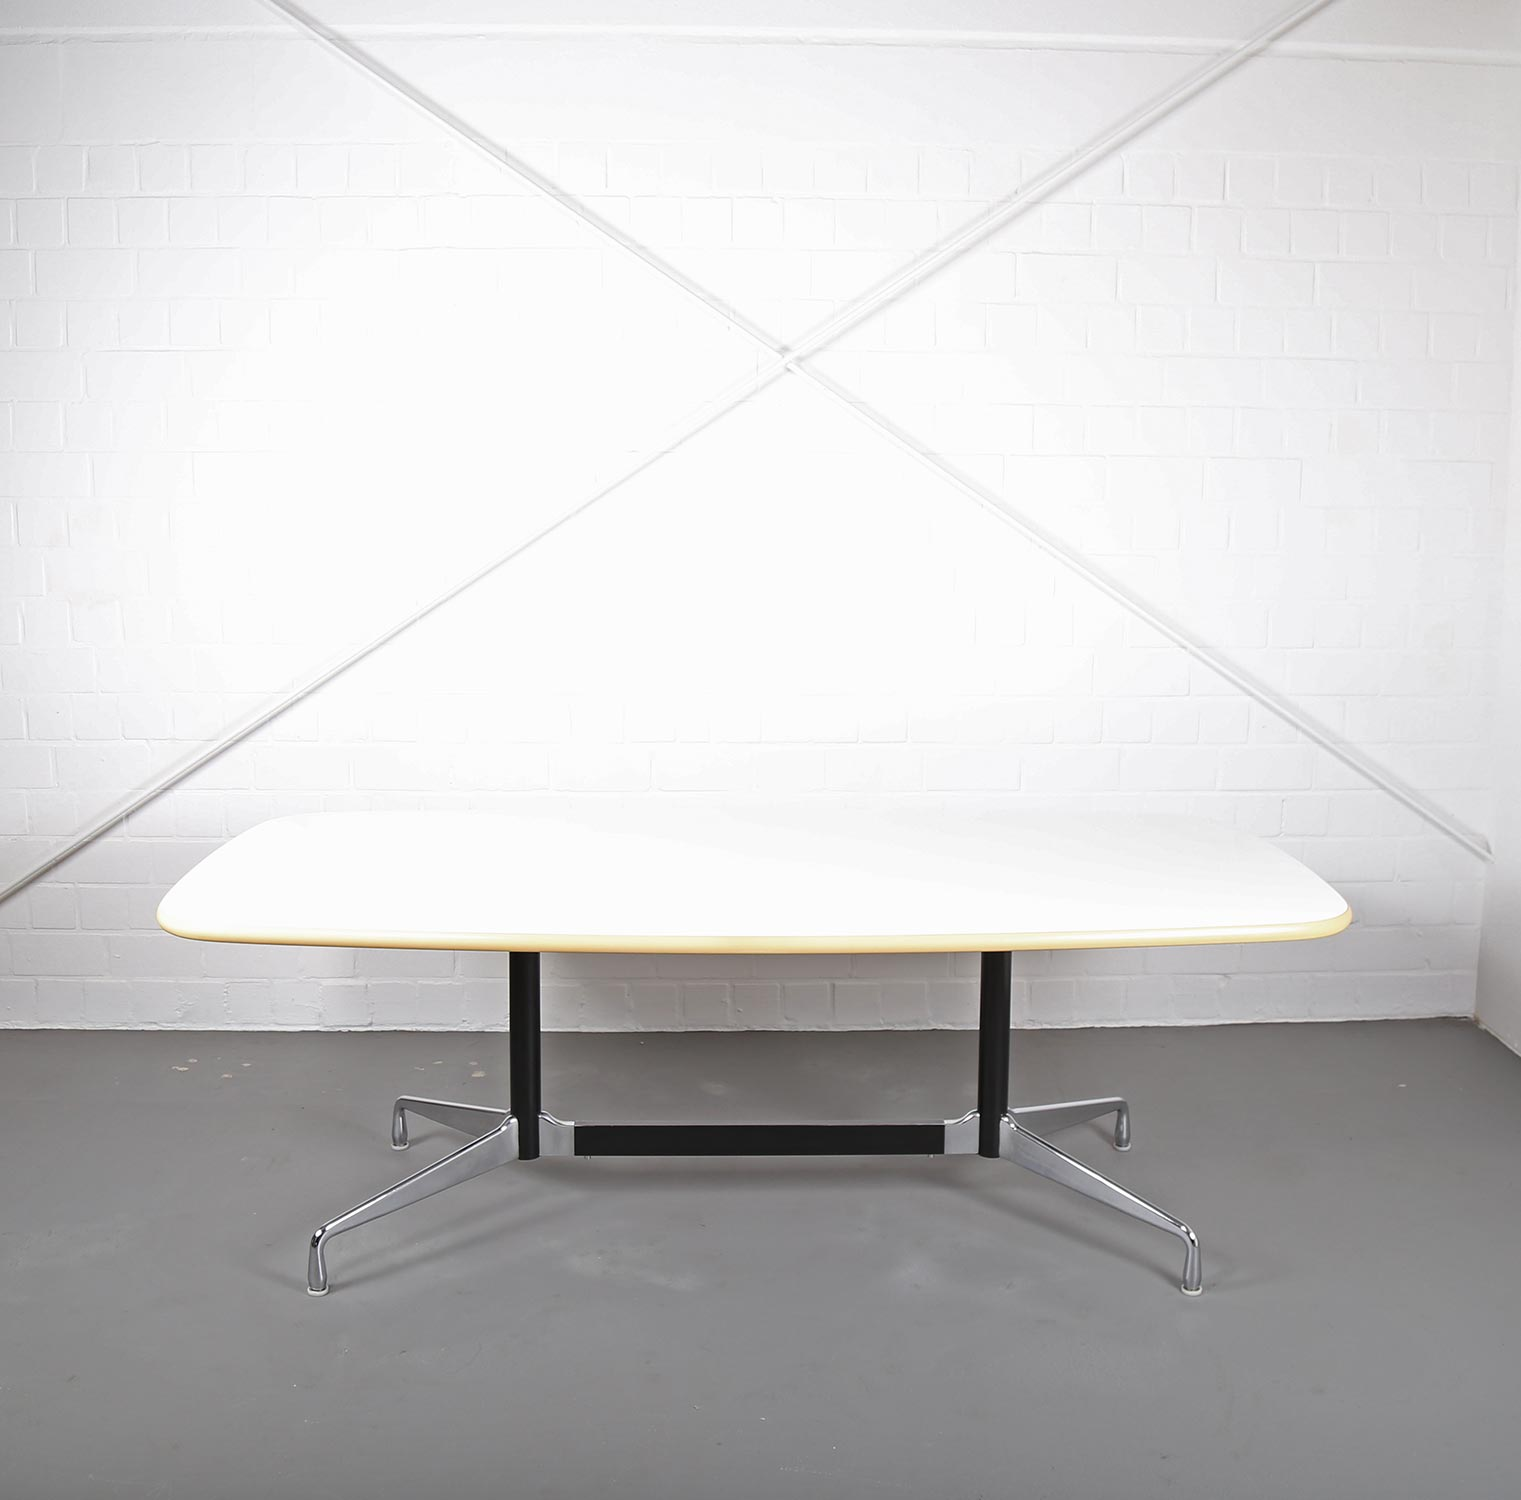 segmented table konferenztisch esstisch ray charles eames for herman miller vitra dekaden. Black Bedroom Furniture Sets. Home Design Ideas